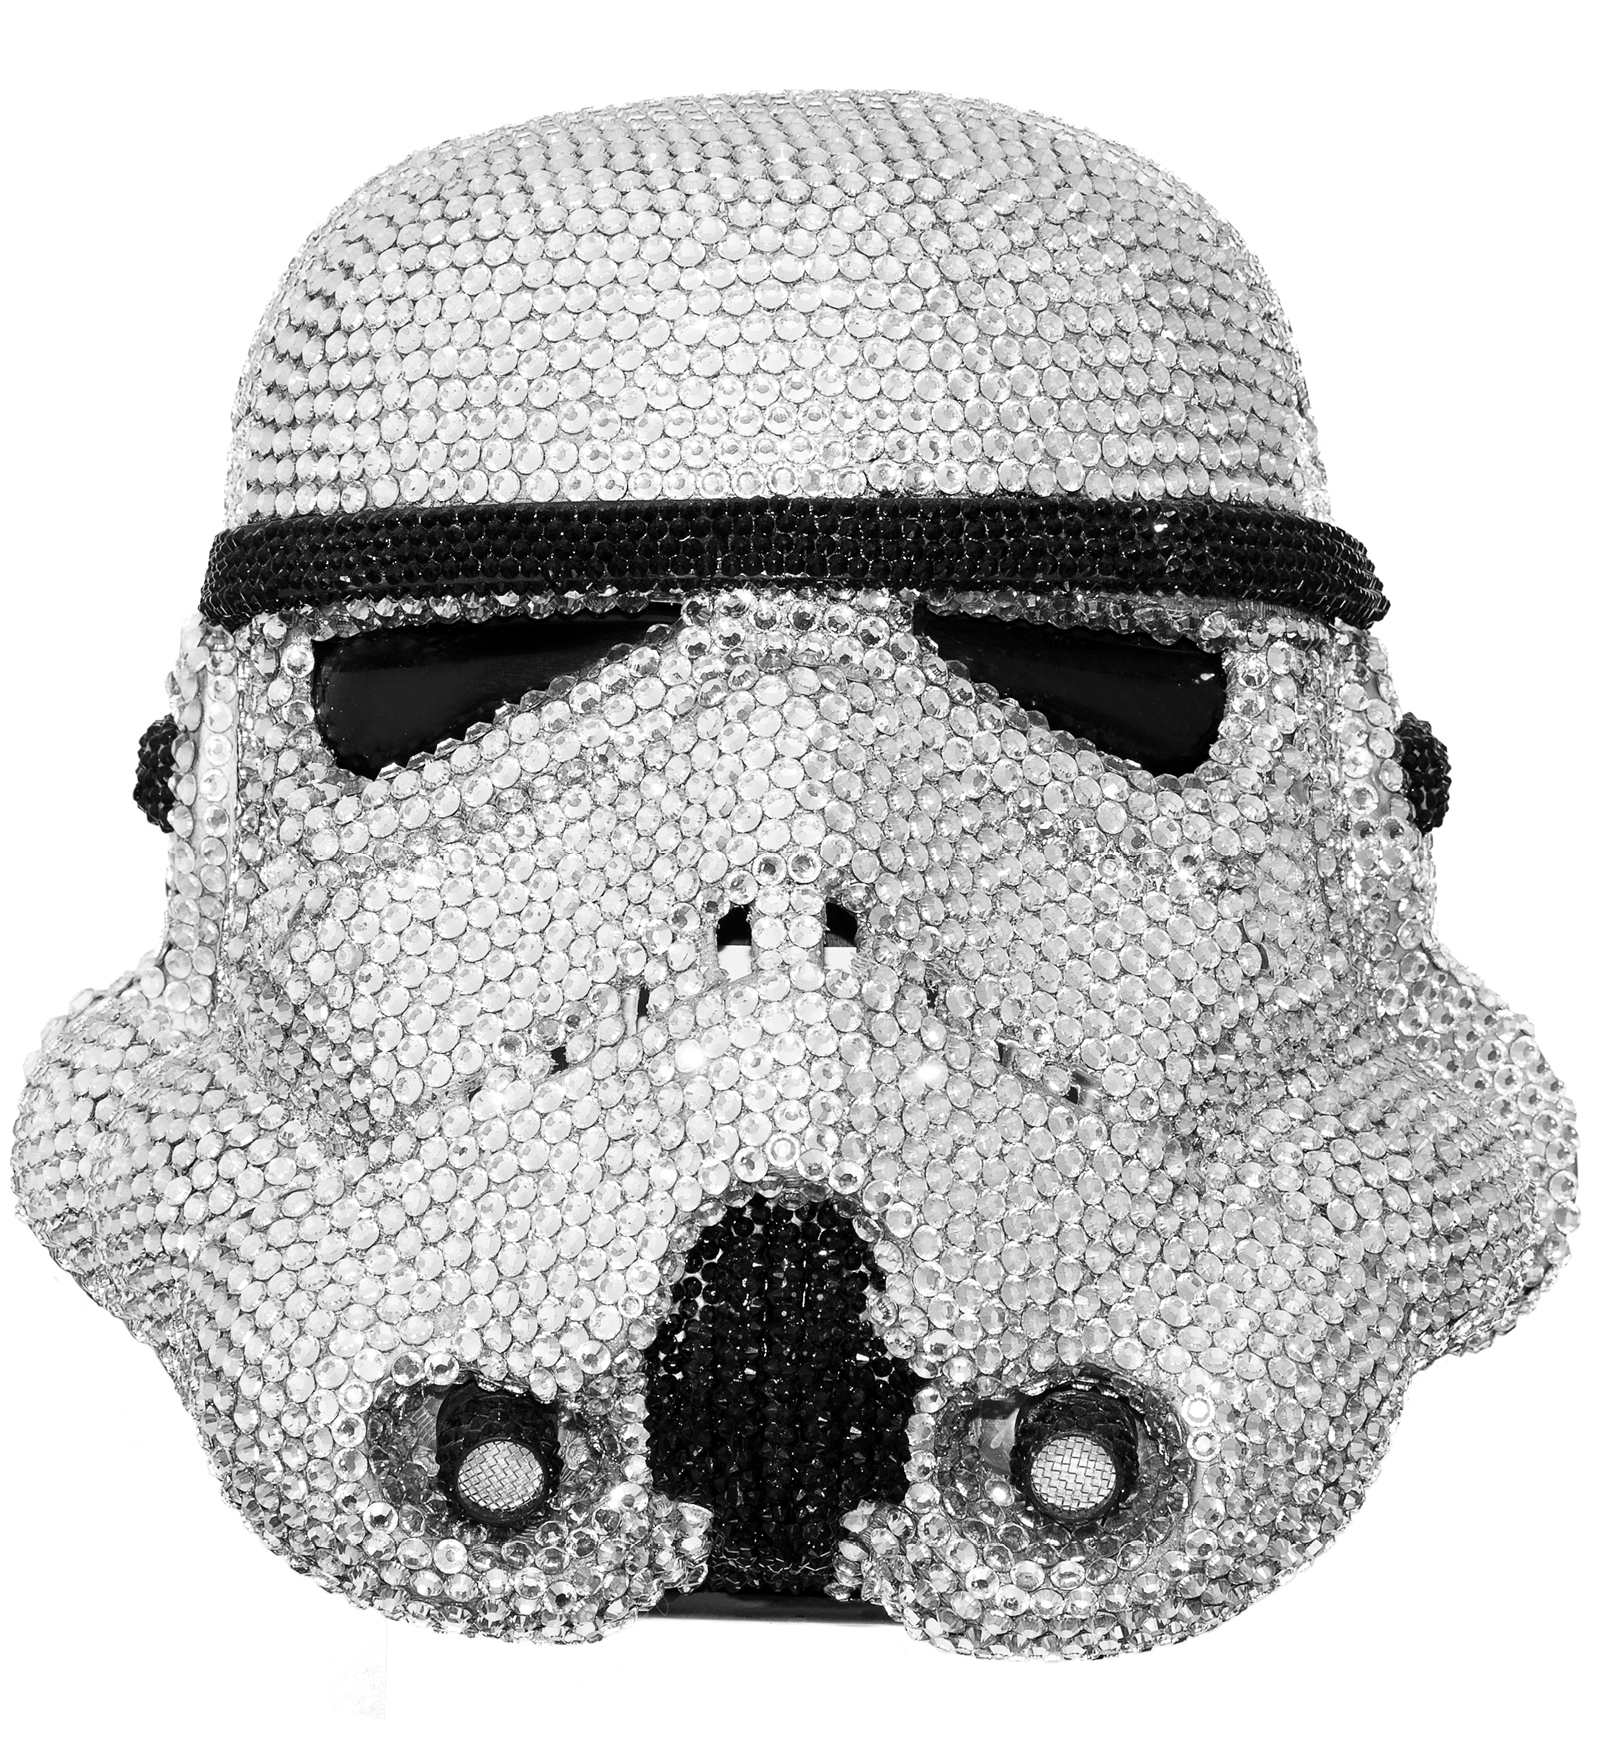 Blinged out Stormtrooper